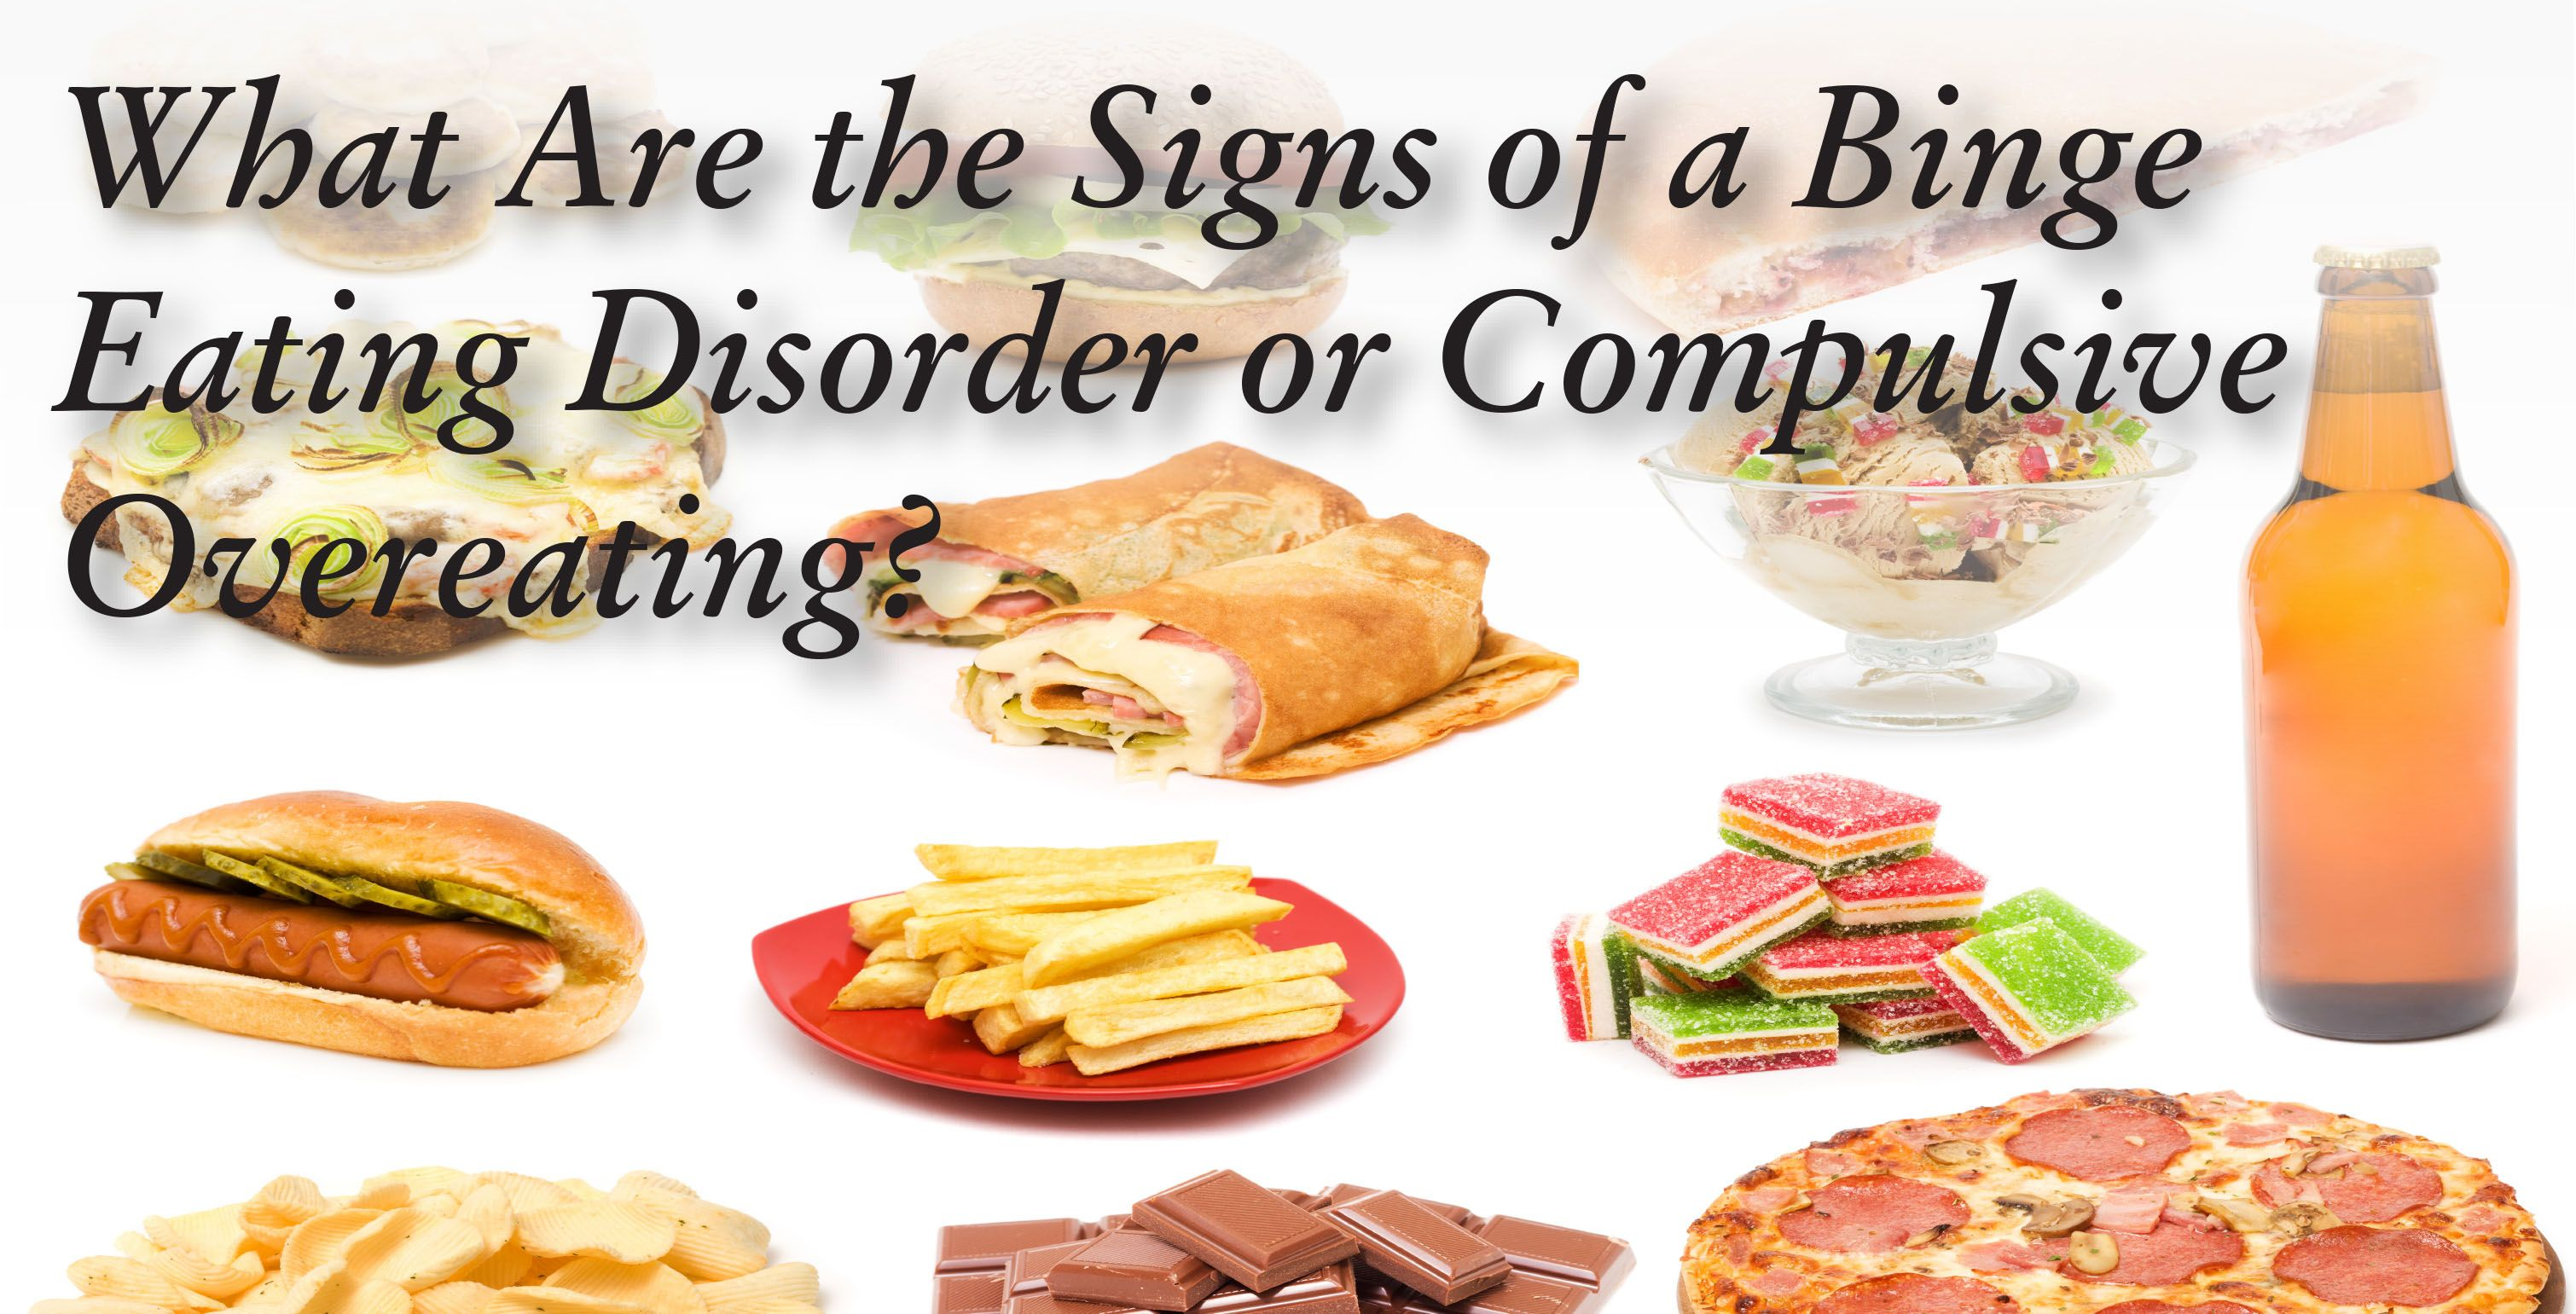 binge eating | isl inspirations | pinterest | binge eating, bulimia